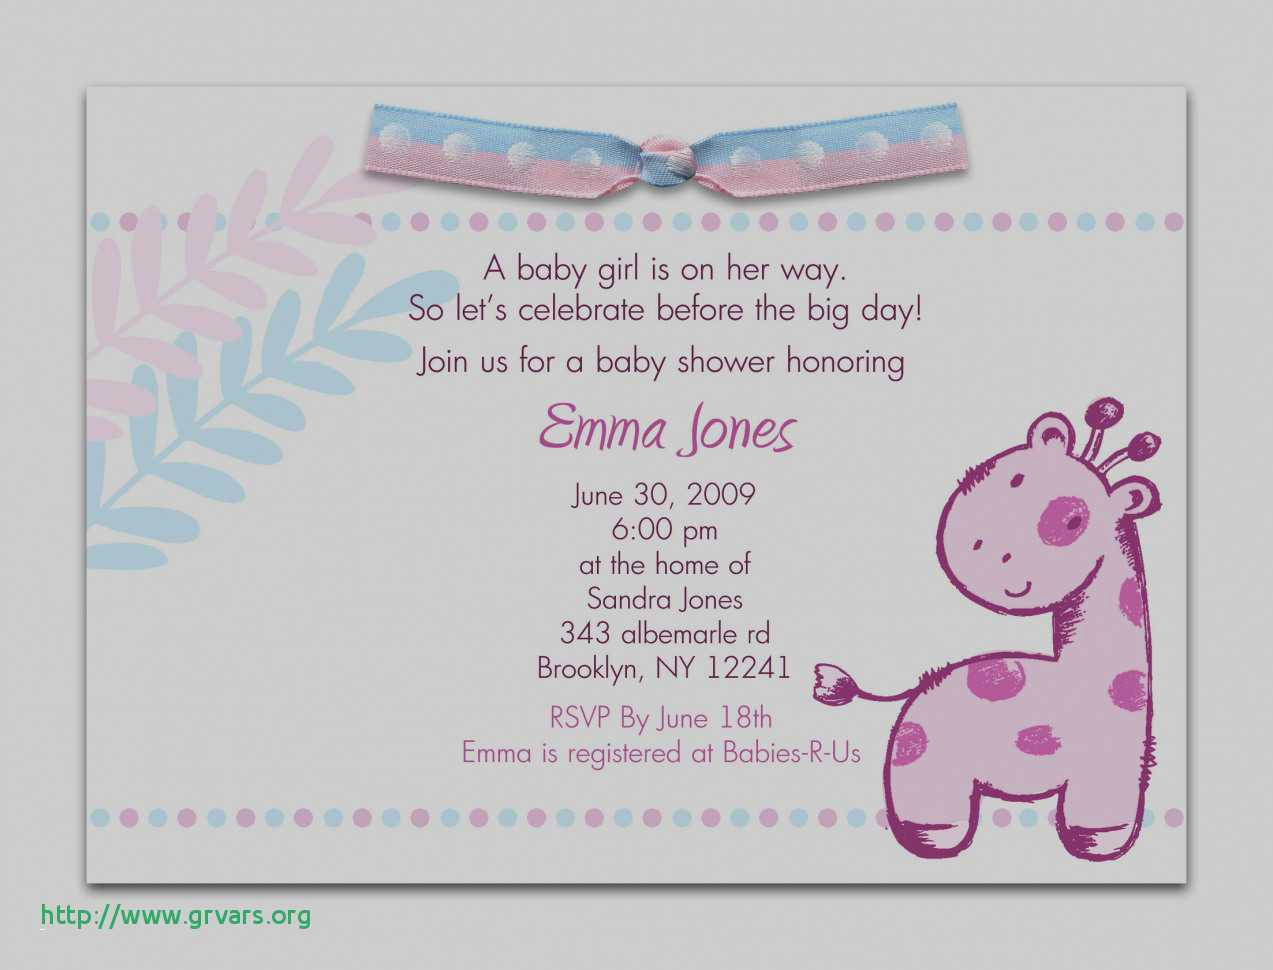 Surprise Baby Shower Invitation Wording Best Of Christian Baby Shower Invitations